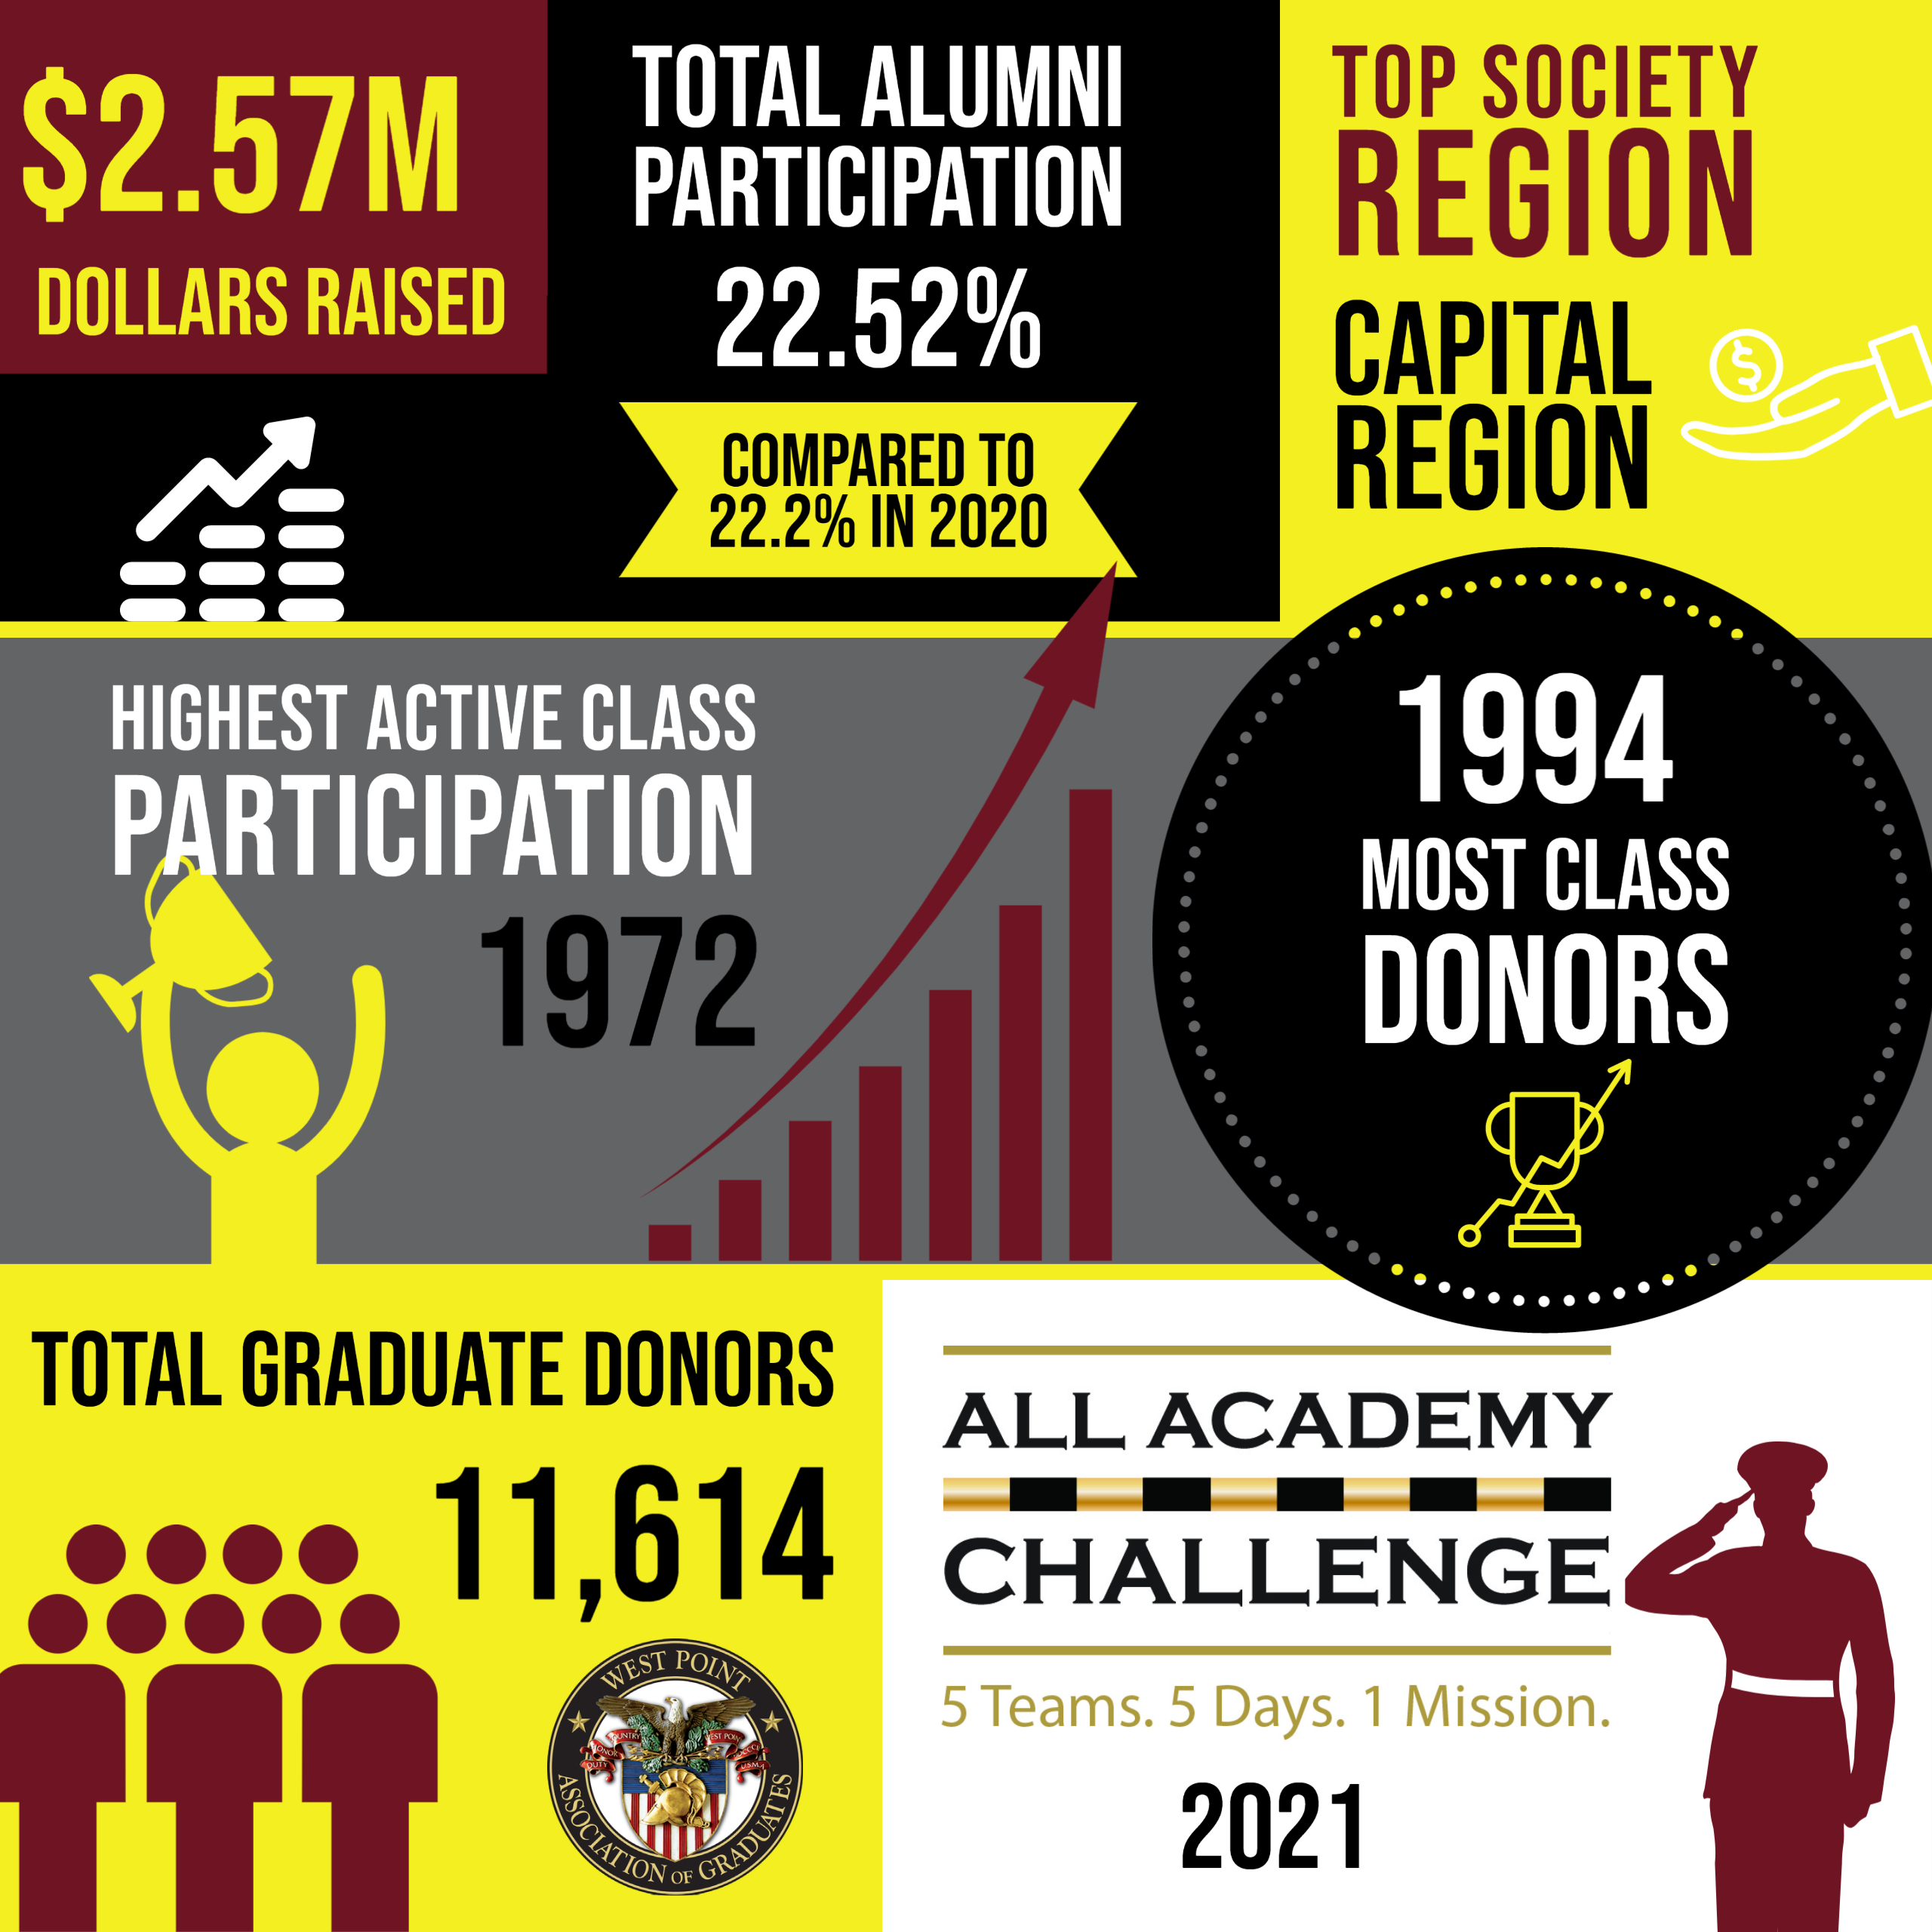 All Academy Challenge Results 2021 Info graphic